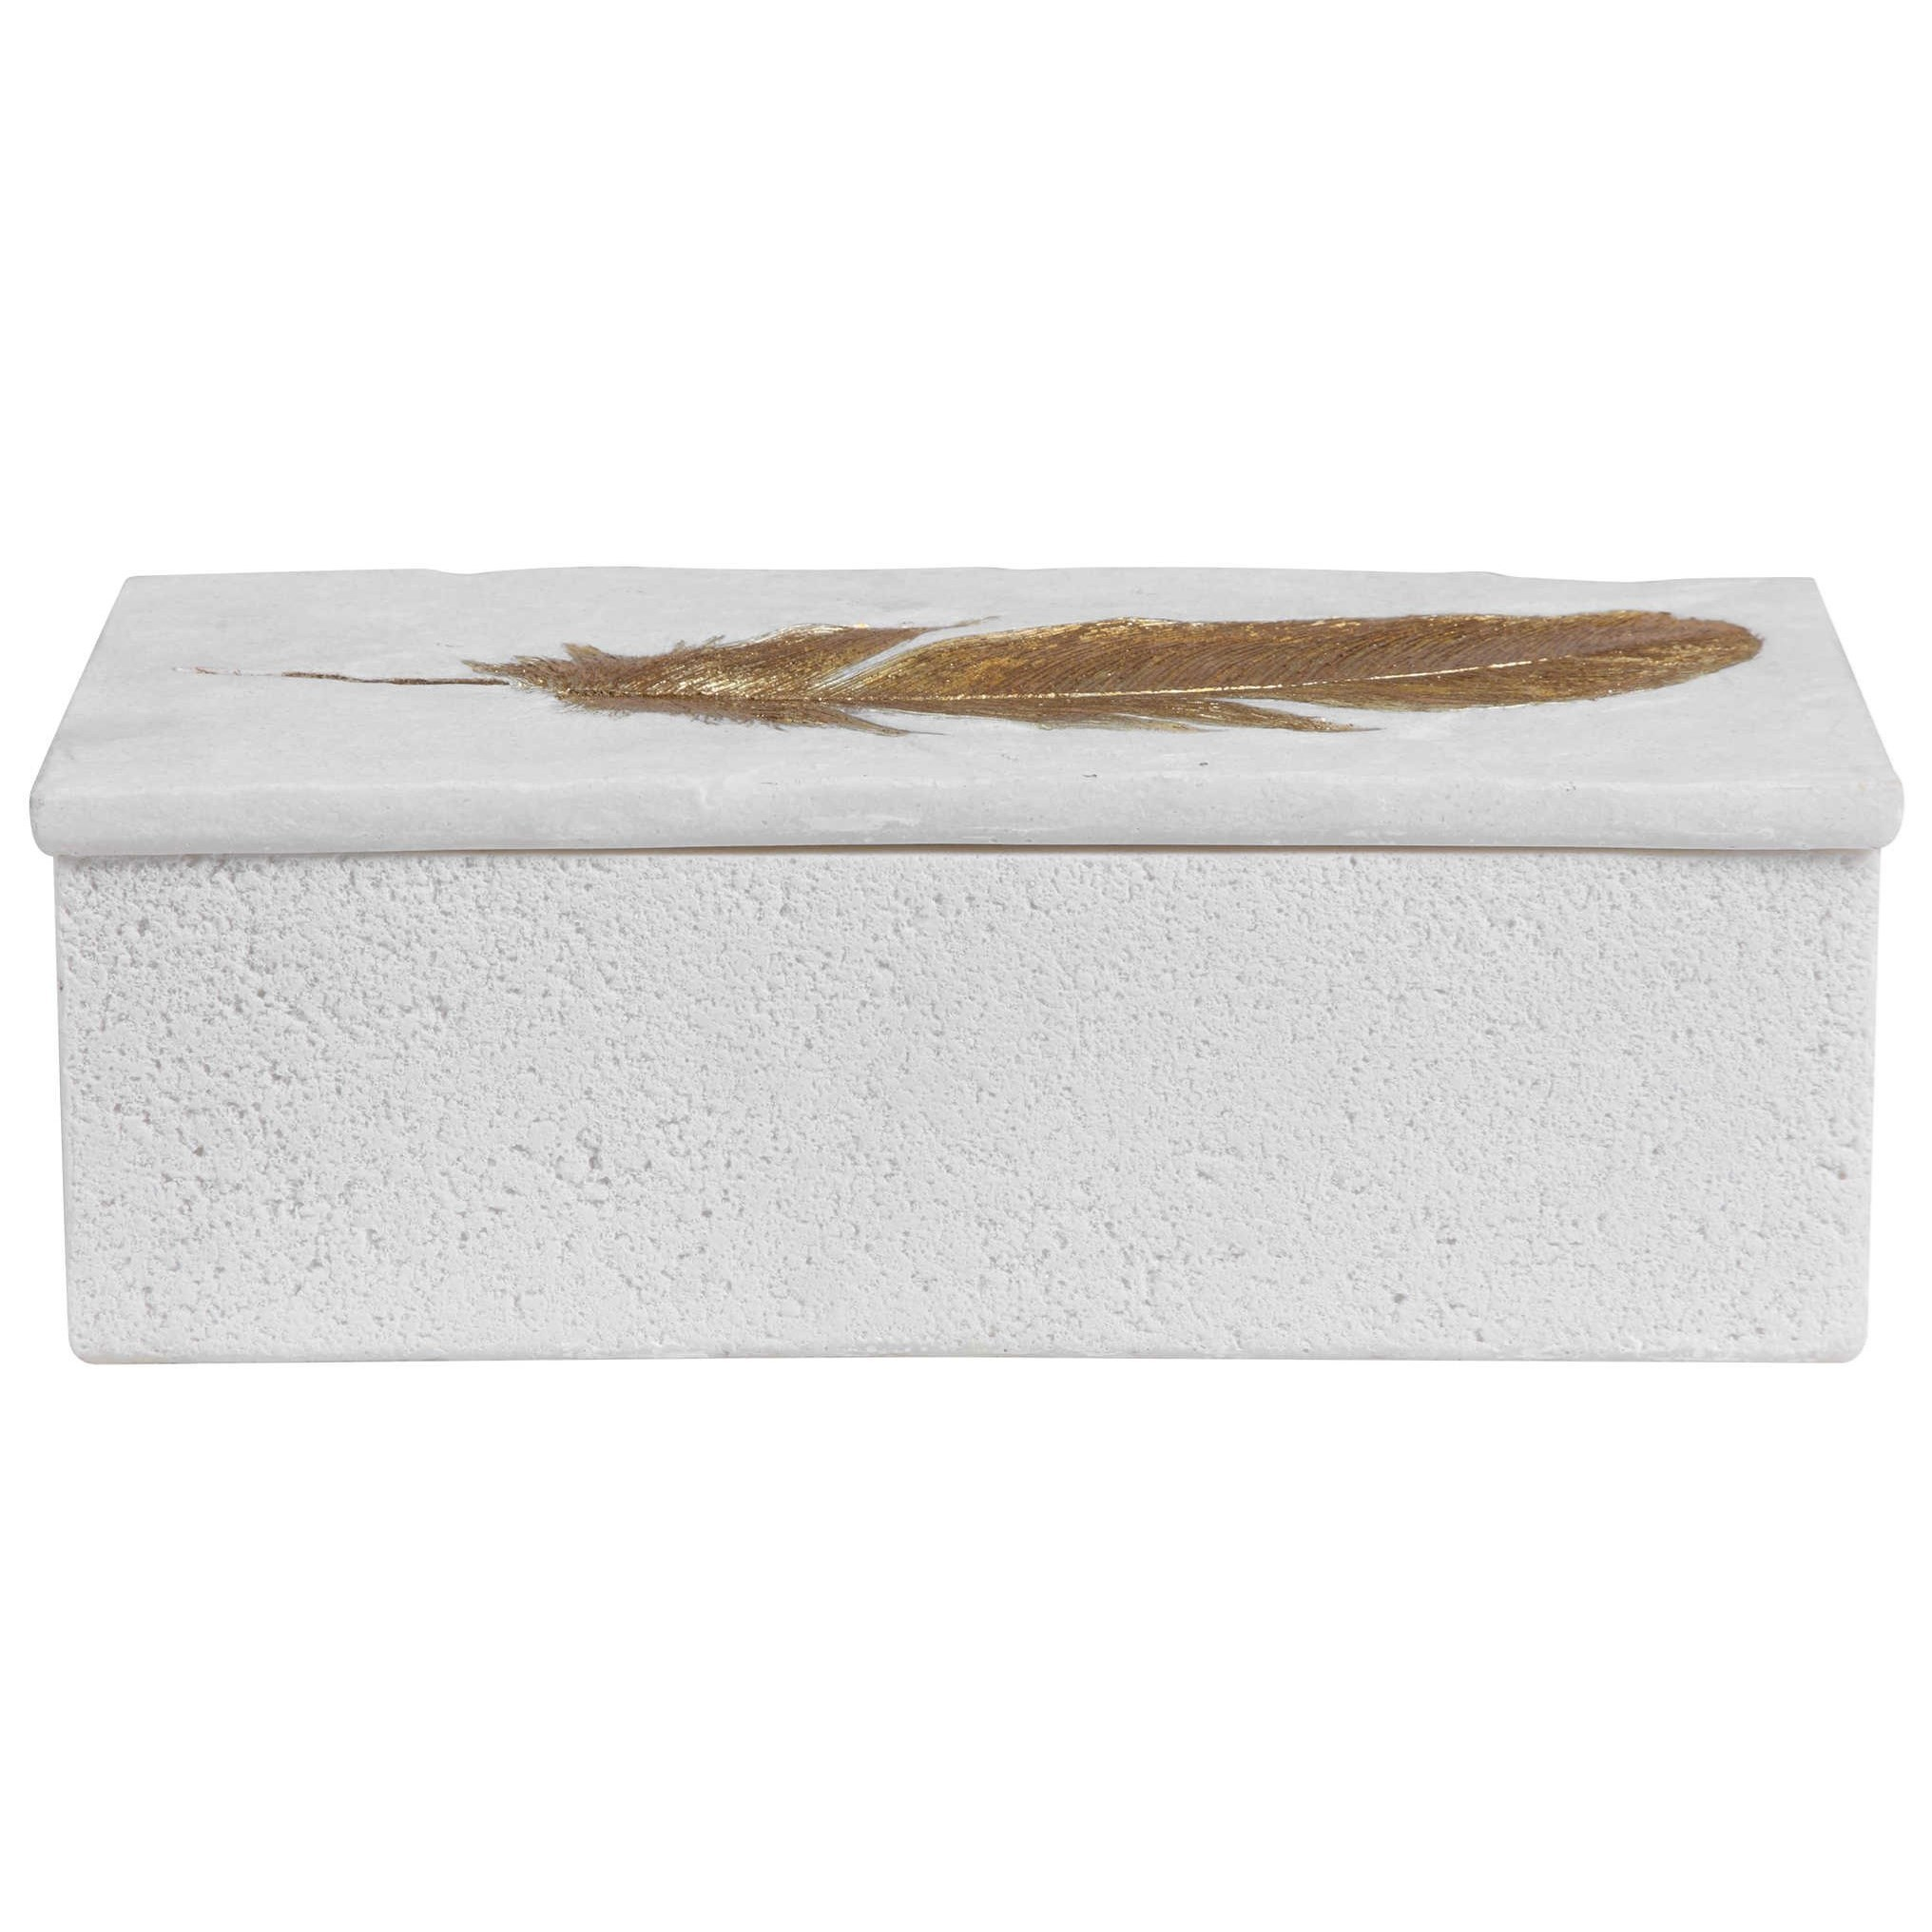 Accessories - Boxes Nephele White Stone Box by Uttermost at Dunk & Bright Furniture